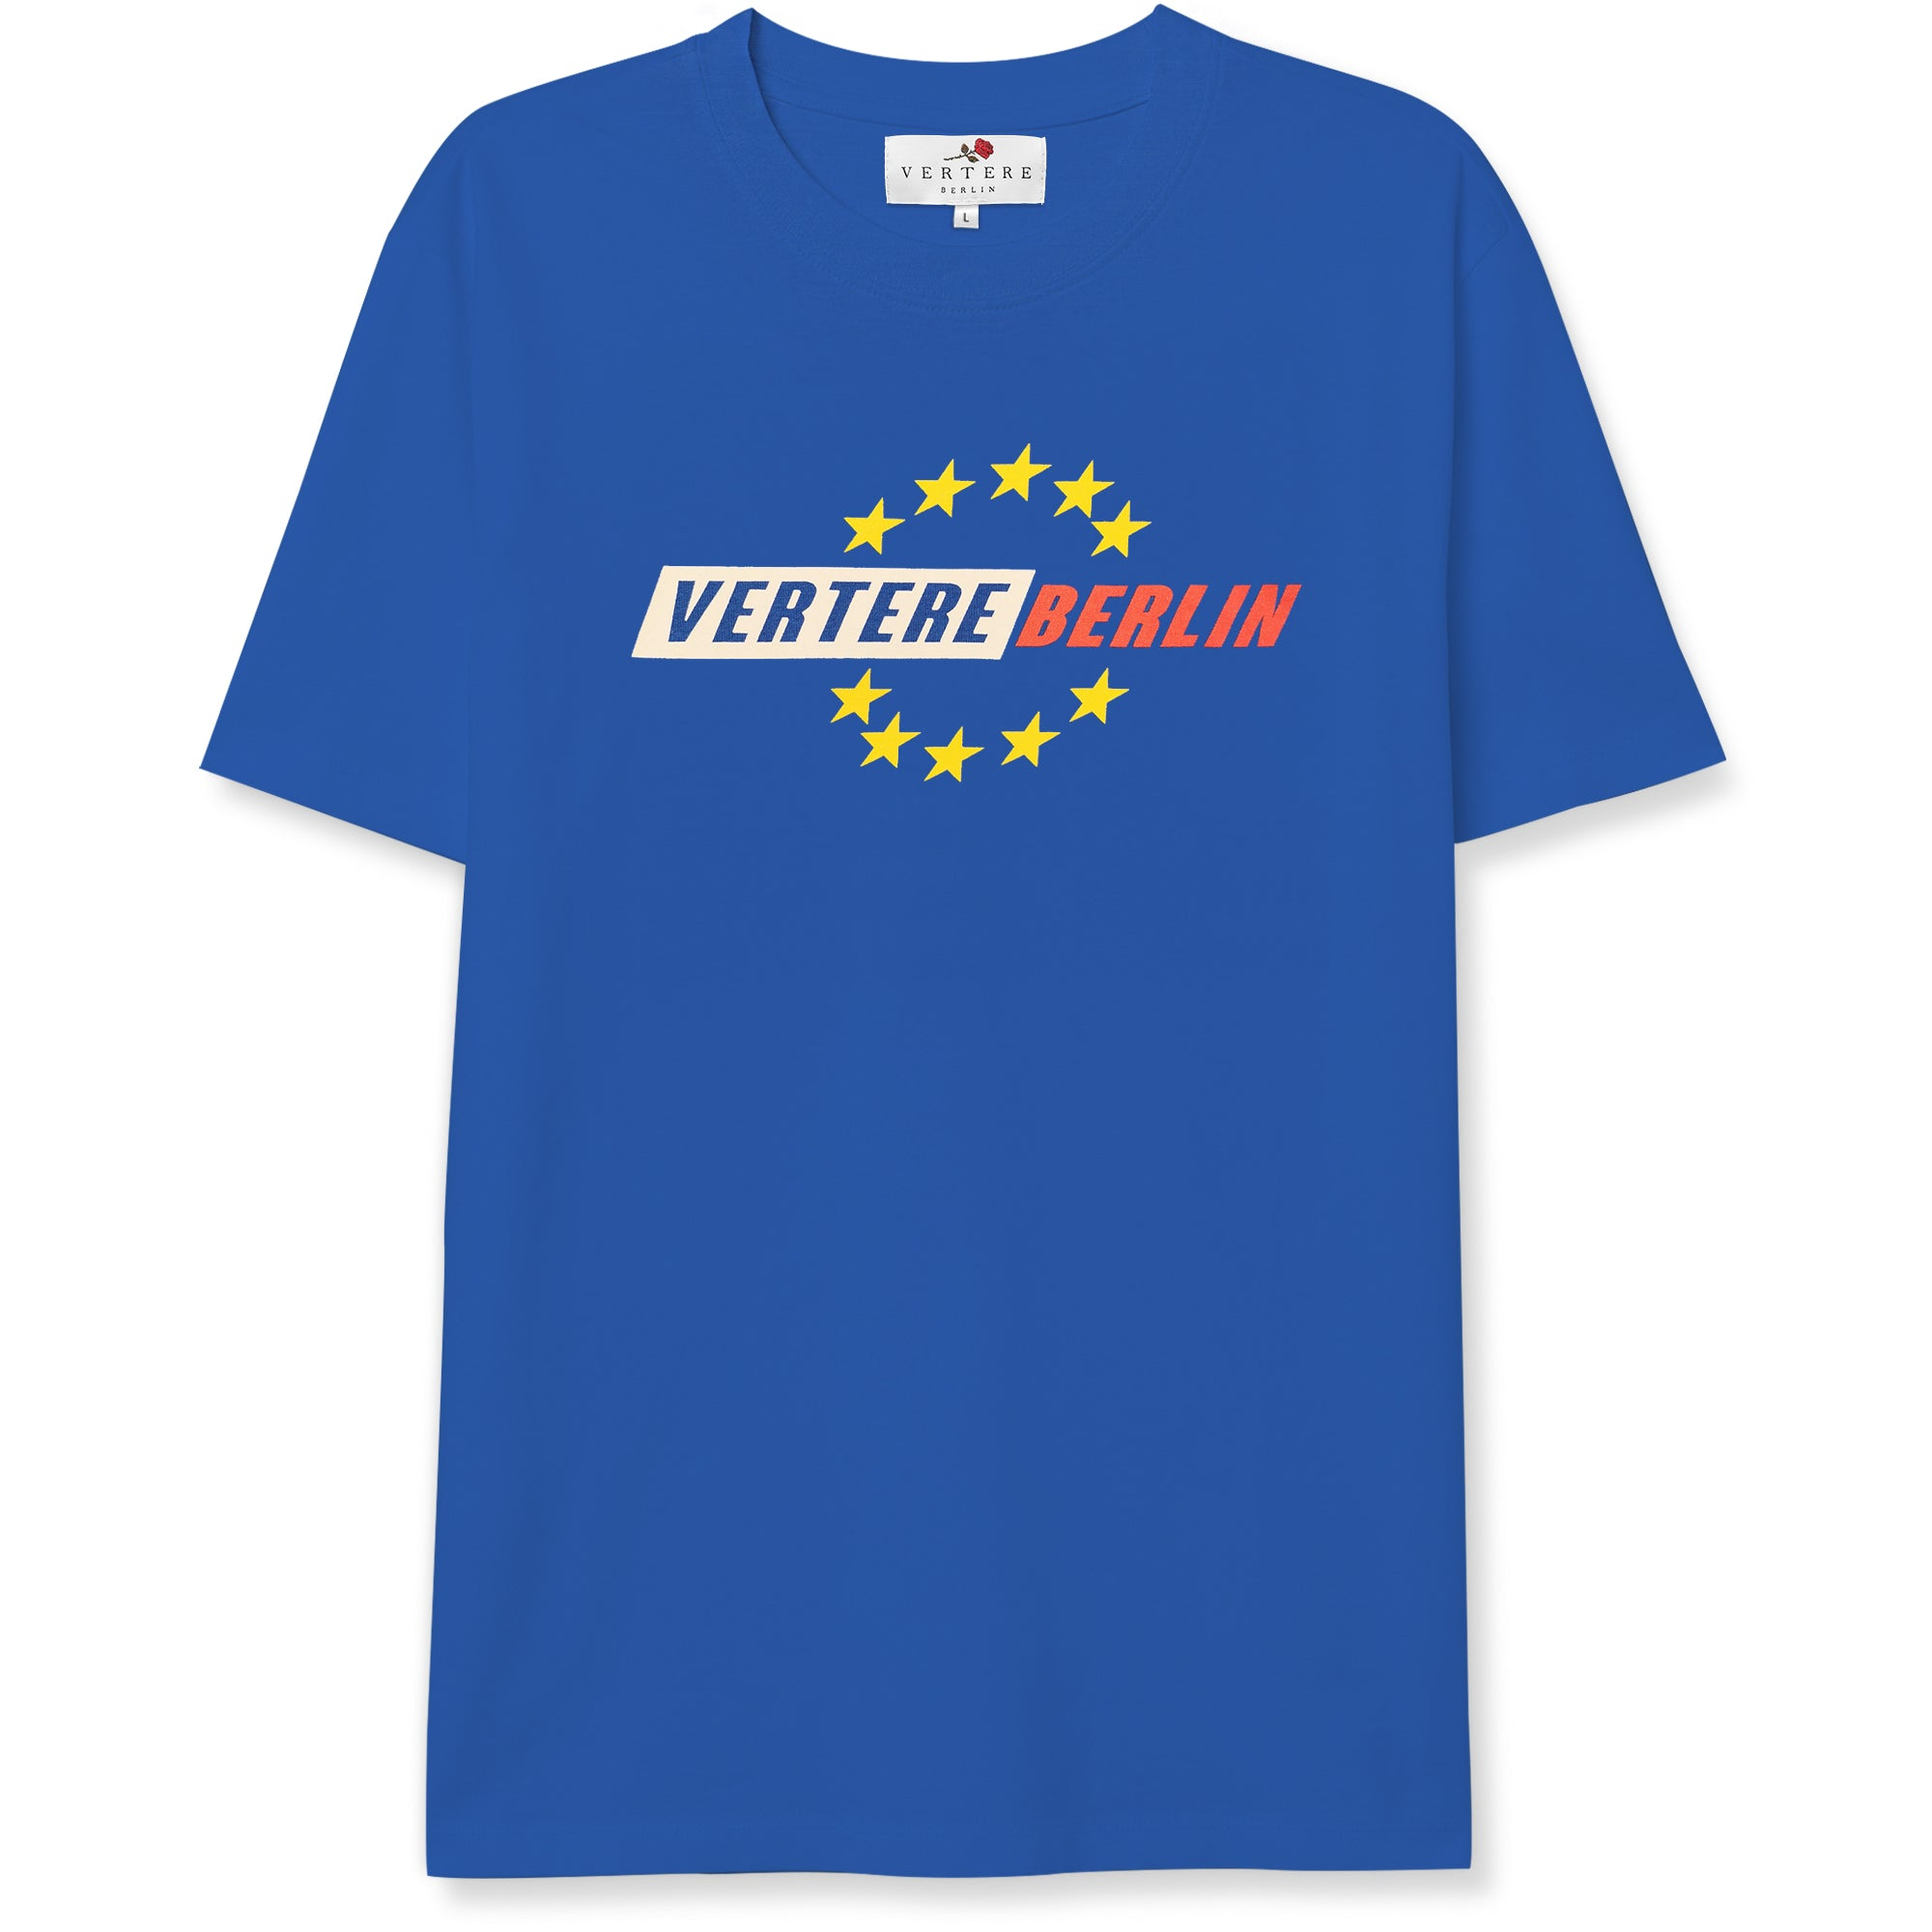 VERTERE UNITED T-SHIRT - ROYAL